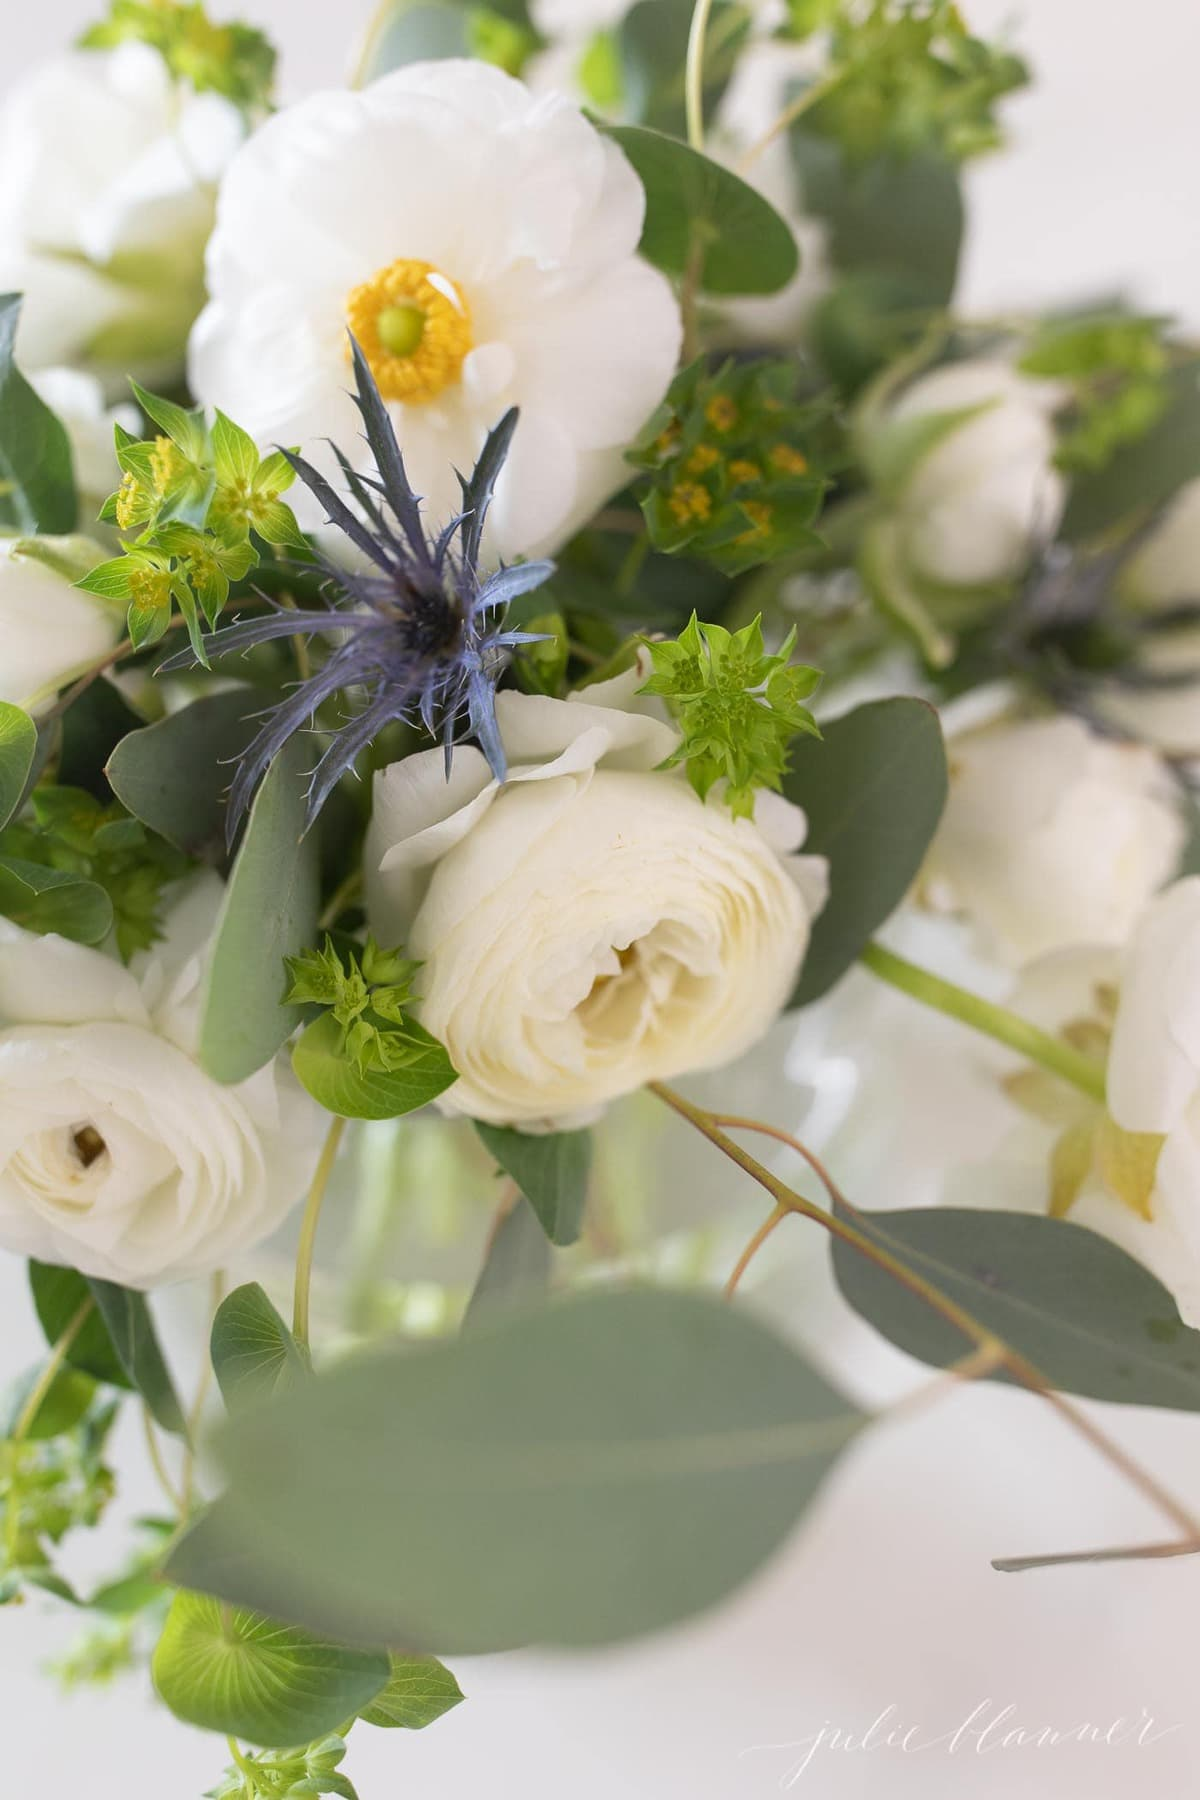 White Ranunculus flower centerpiece close up image